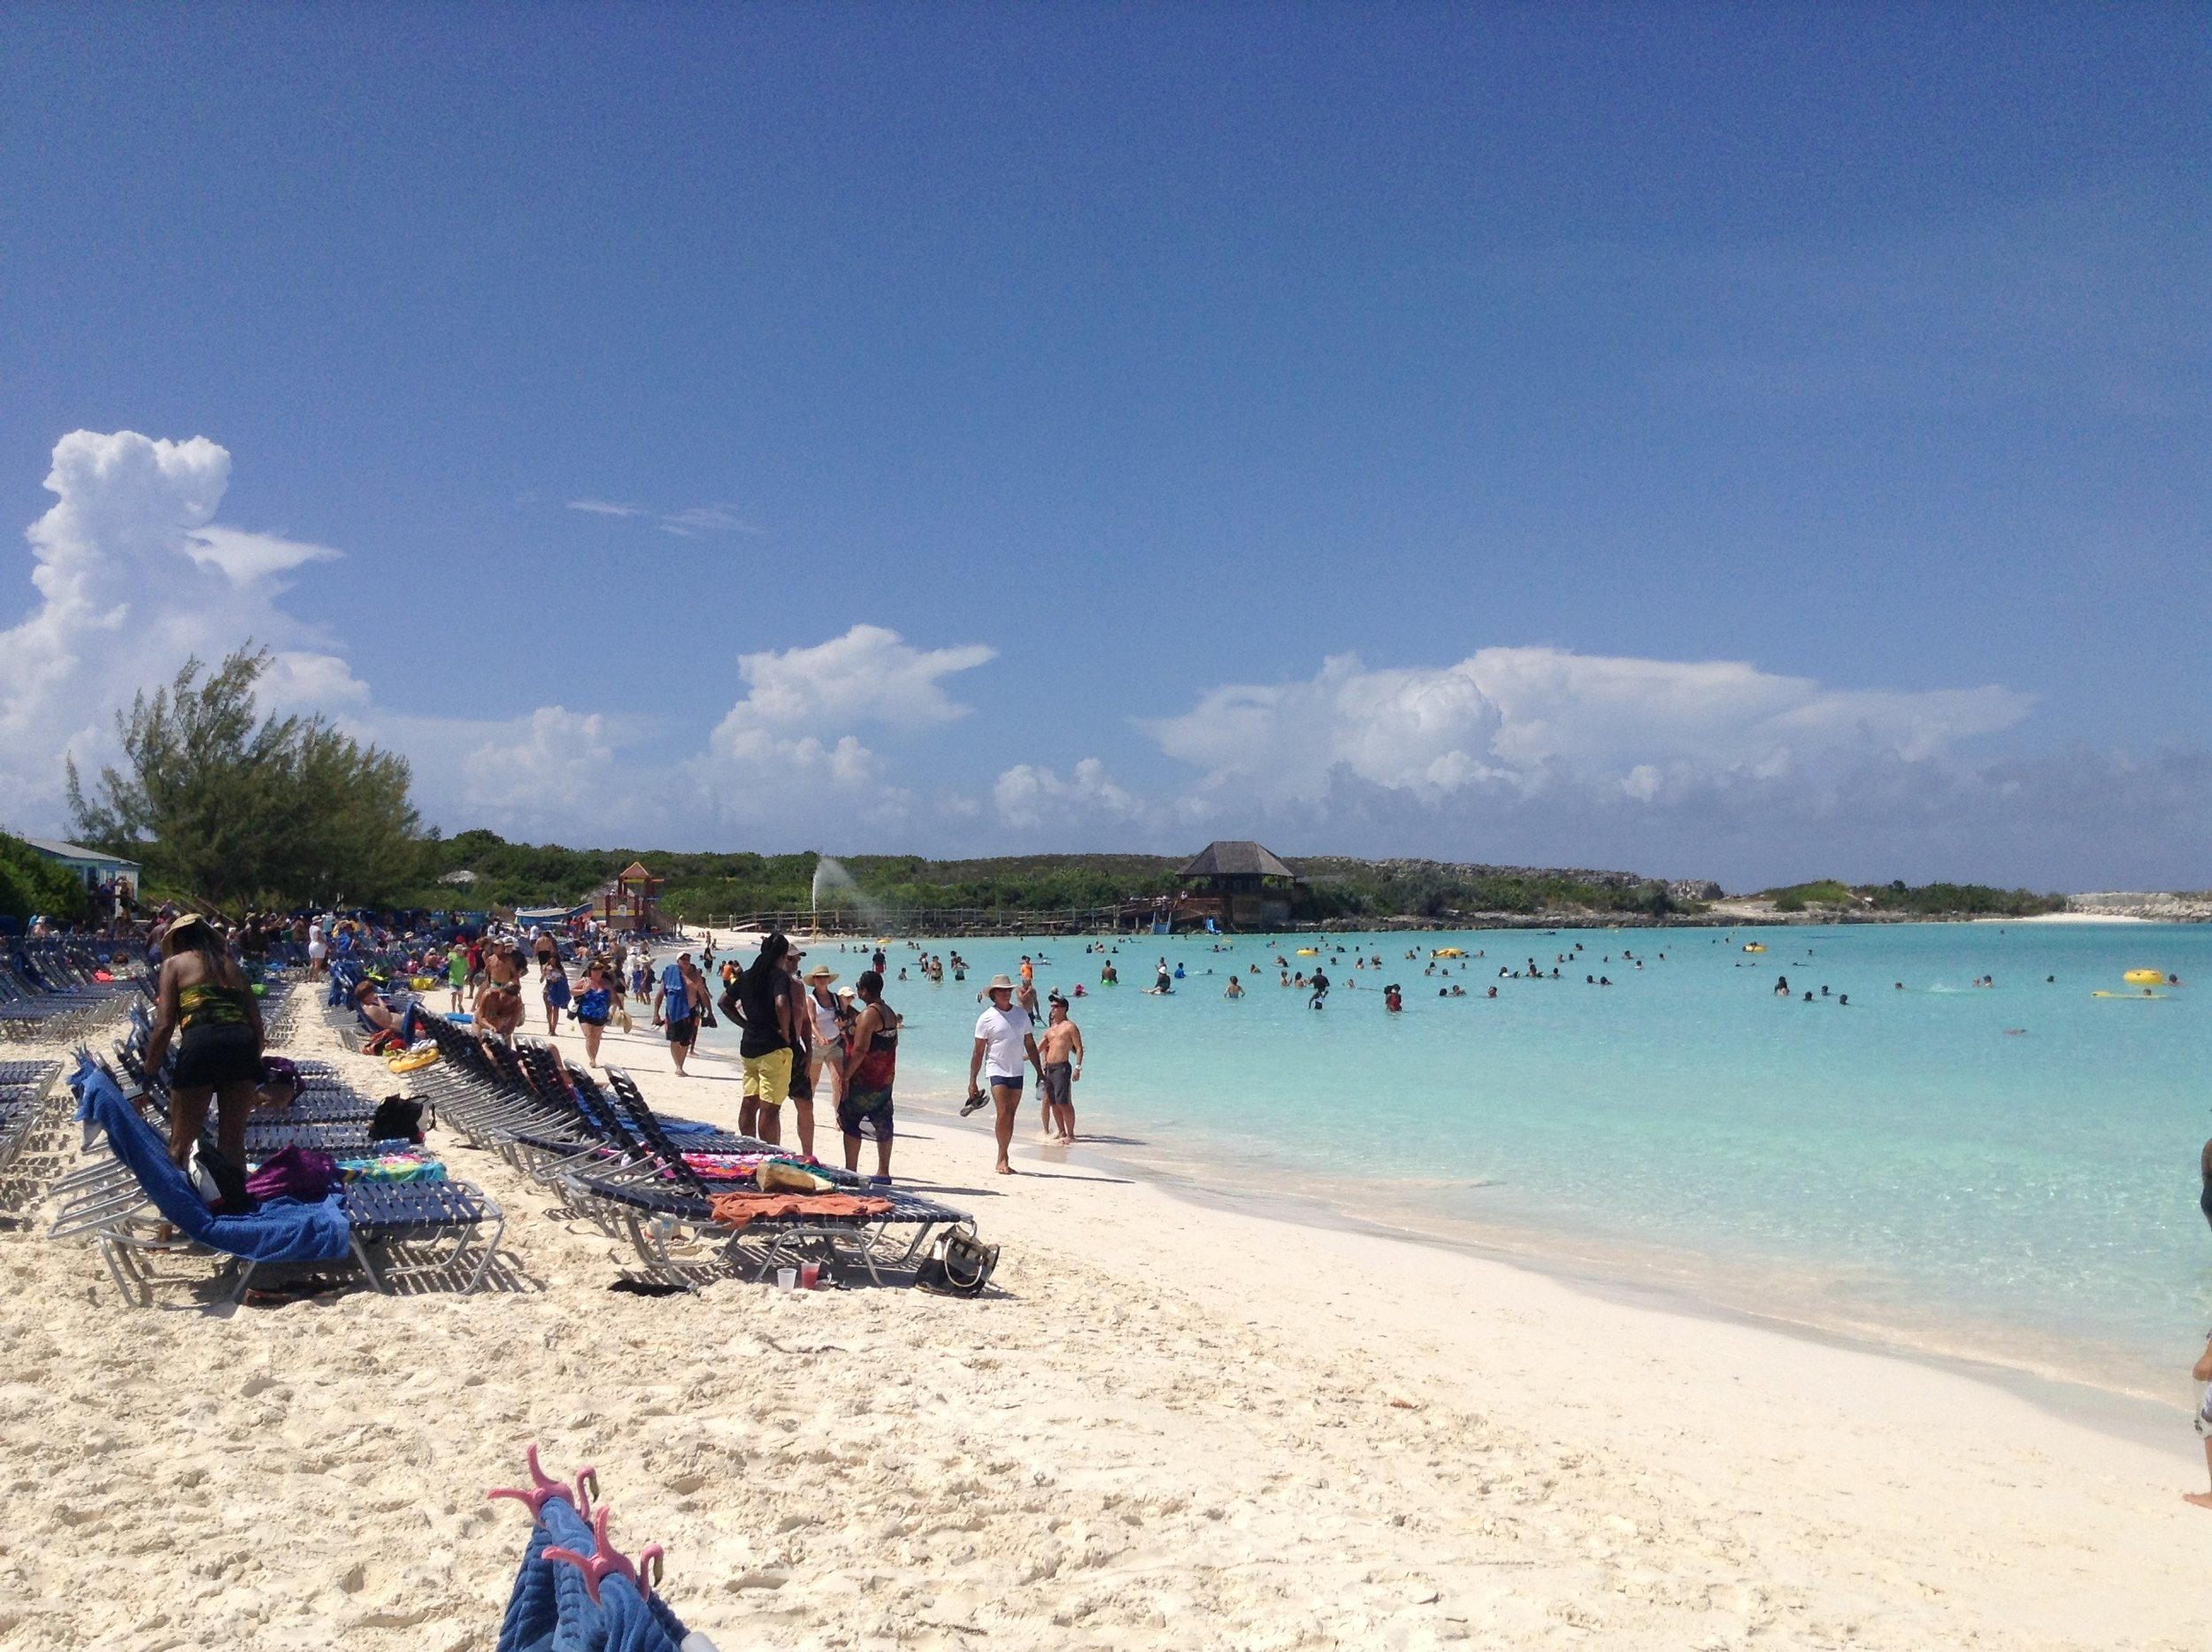 My favourite destination on our cruise: Half Moon Cay, Bahamas